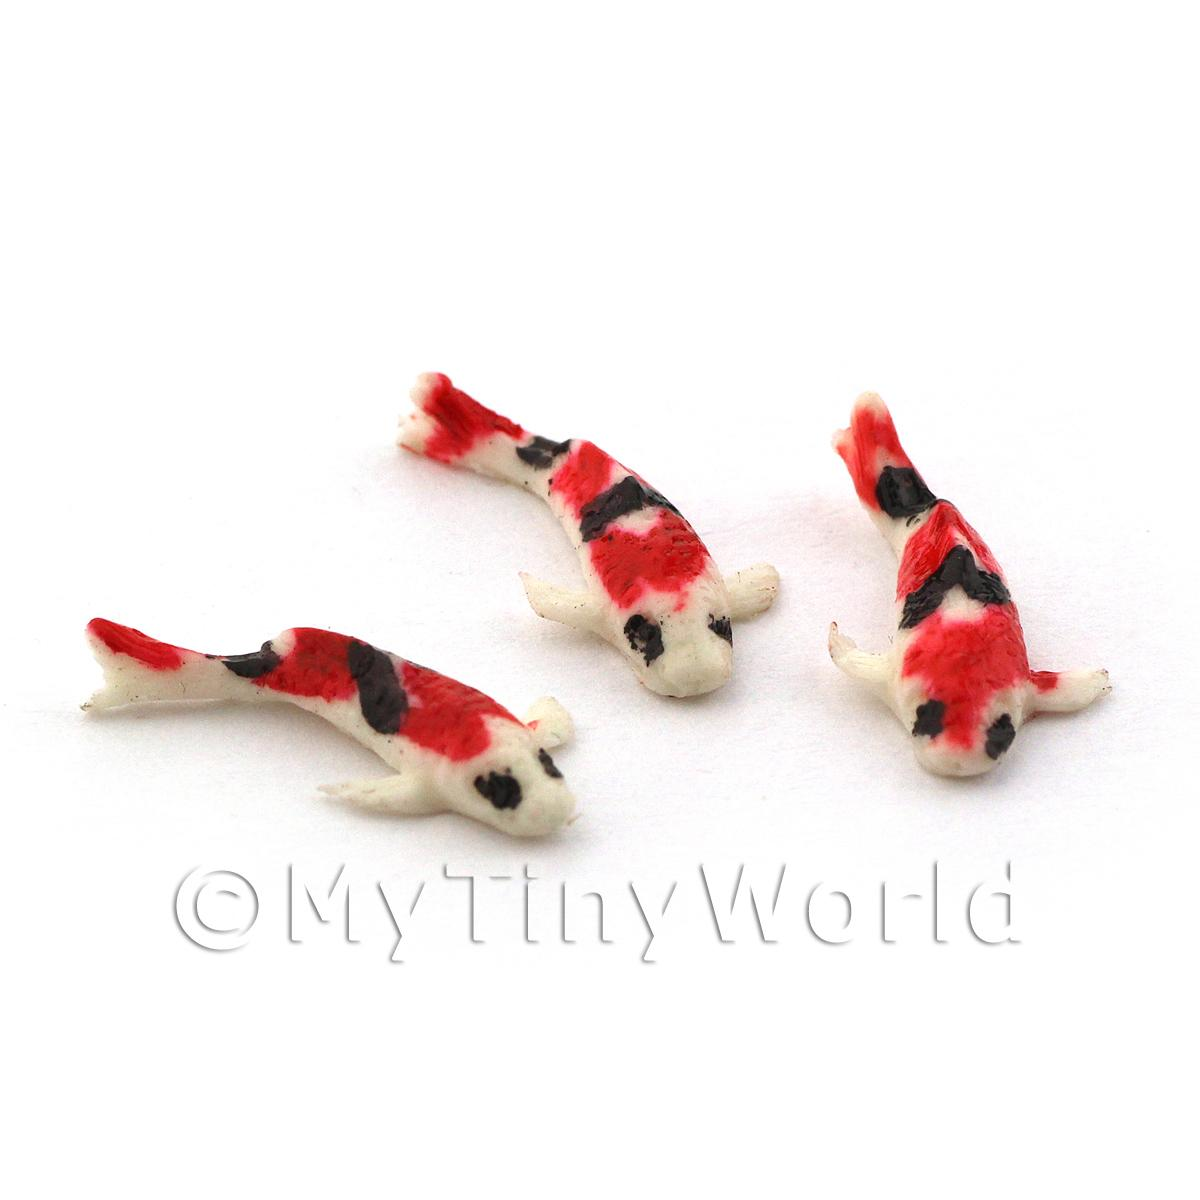 2 Loose Dollhouse Miniature Red and Yellow Black Fish Food Decor Fishmonger 3